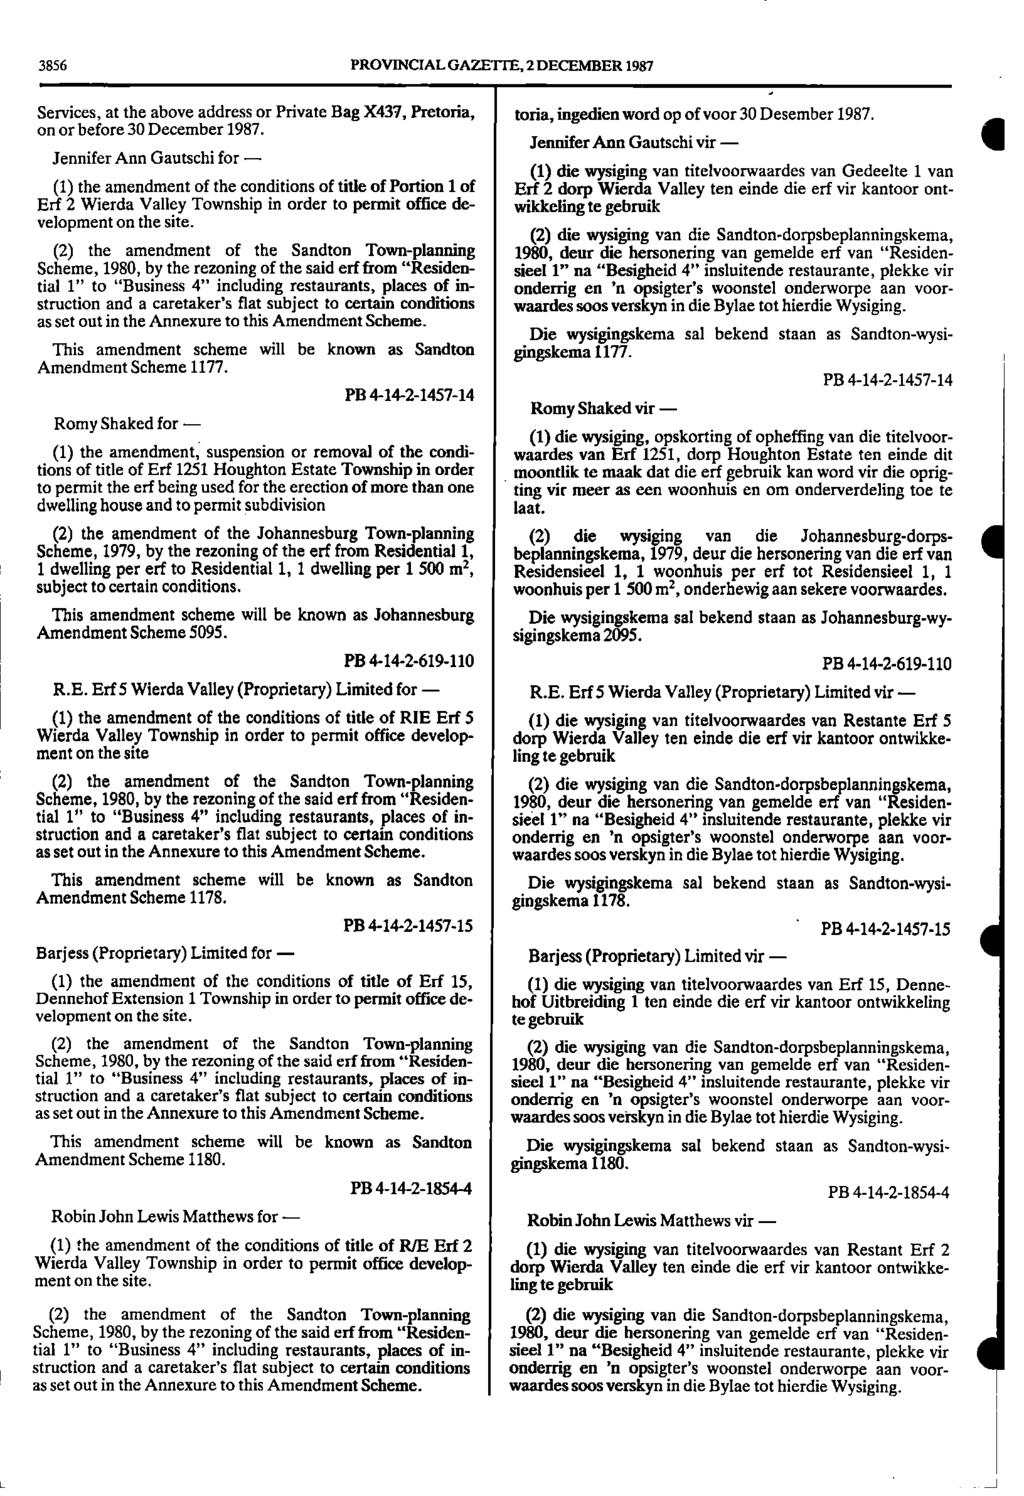 I 3856 PROVINCIAL GAZETTE, 2 DECEMBER 1987 Services, at the above address or Private Bag X437, Pretoria, toria, ingedien word op of voor 30 Desember 1987. on or before 30 December 1987.